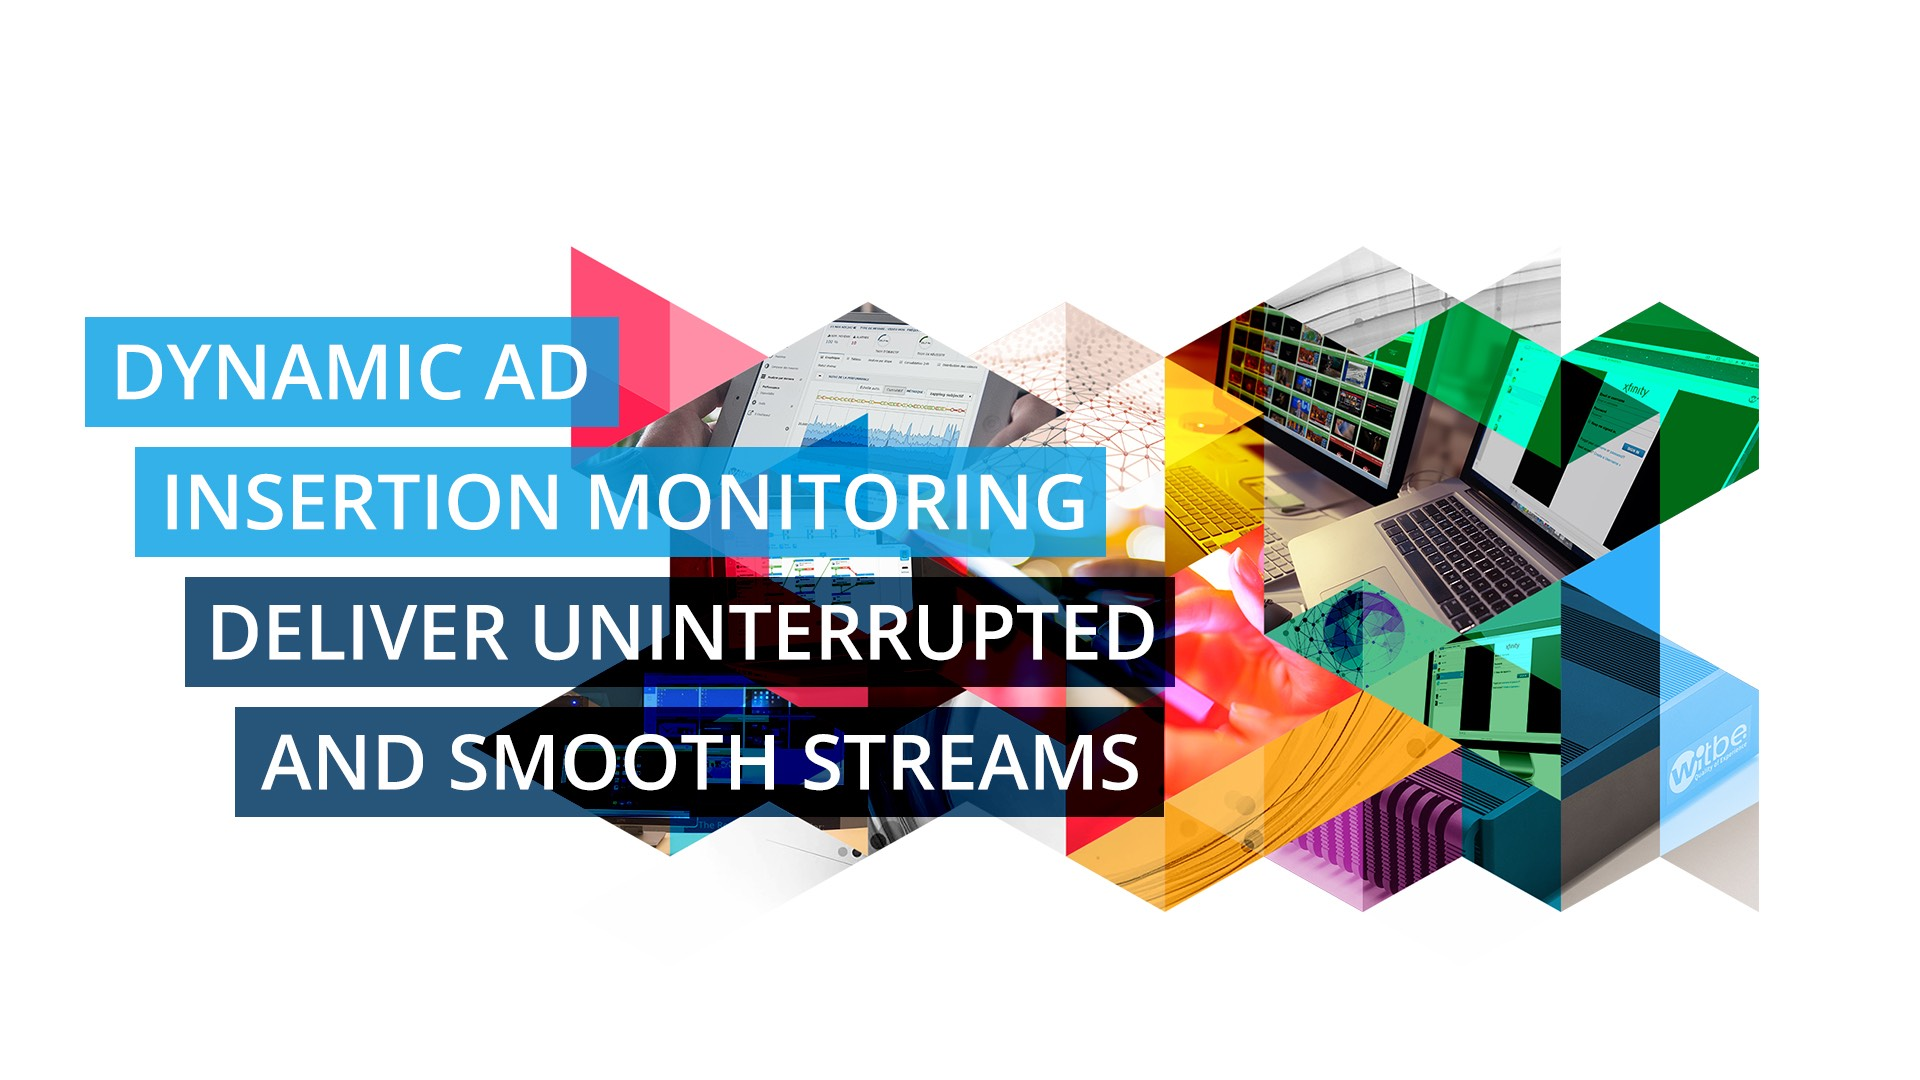 Dynamic ad insertion monitoring